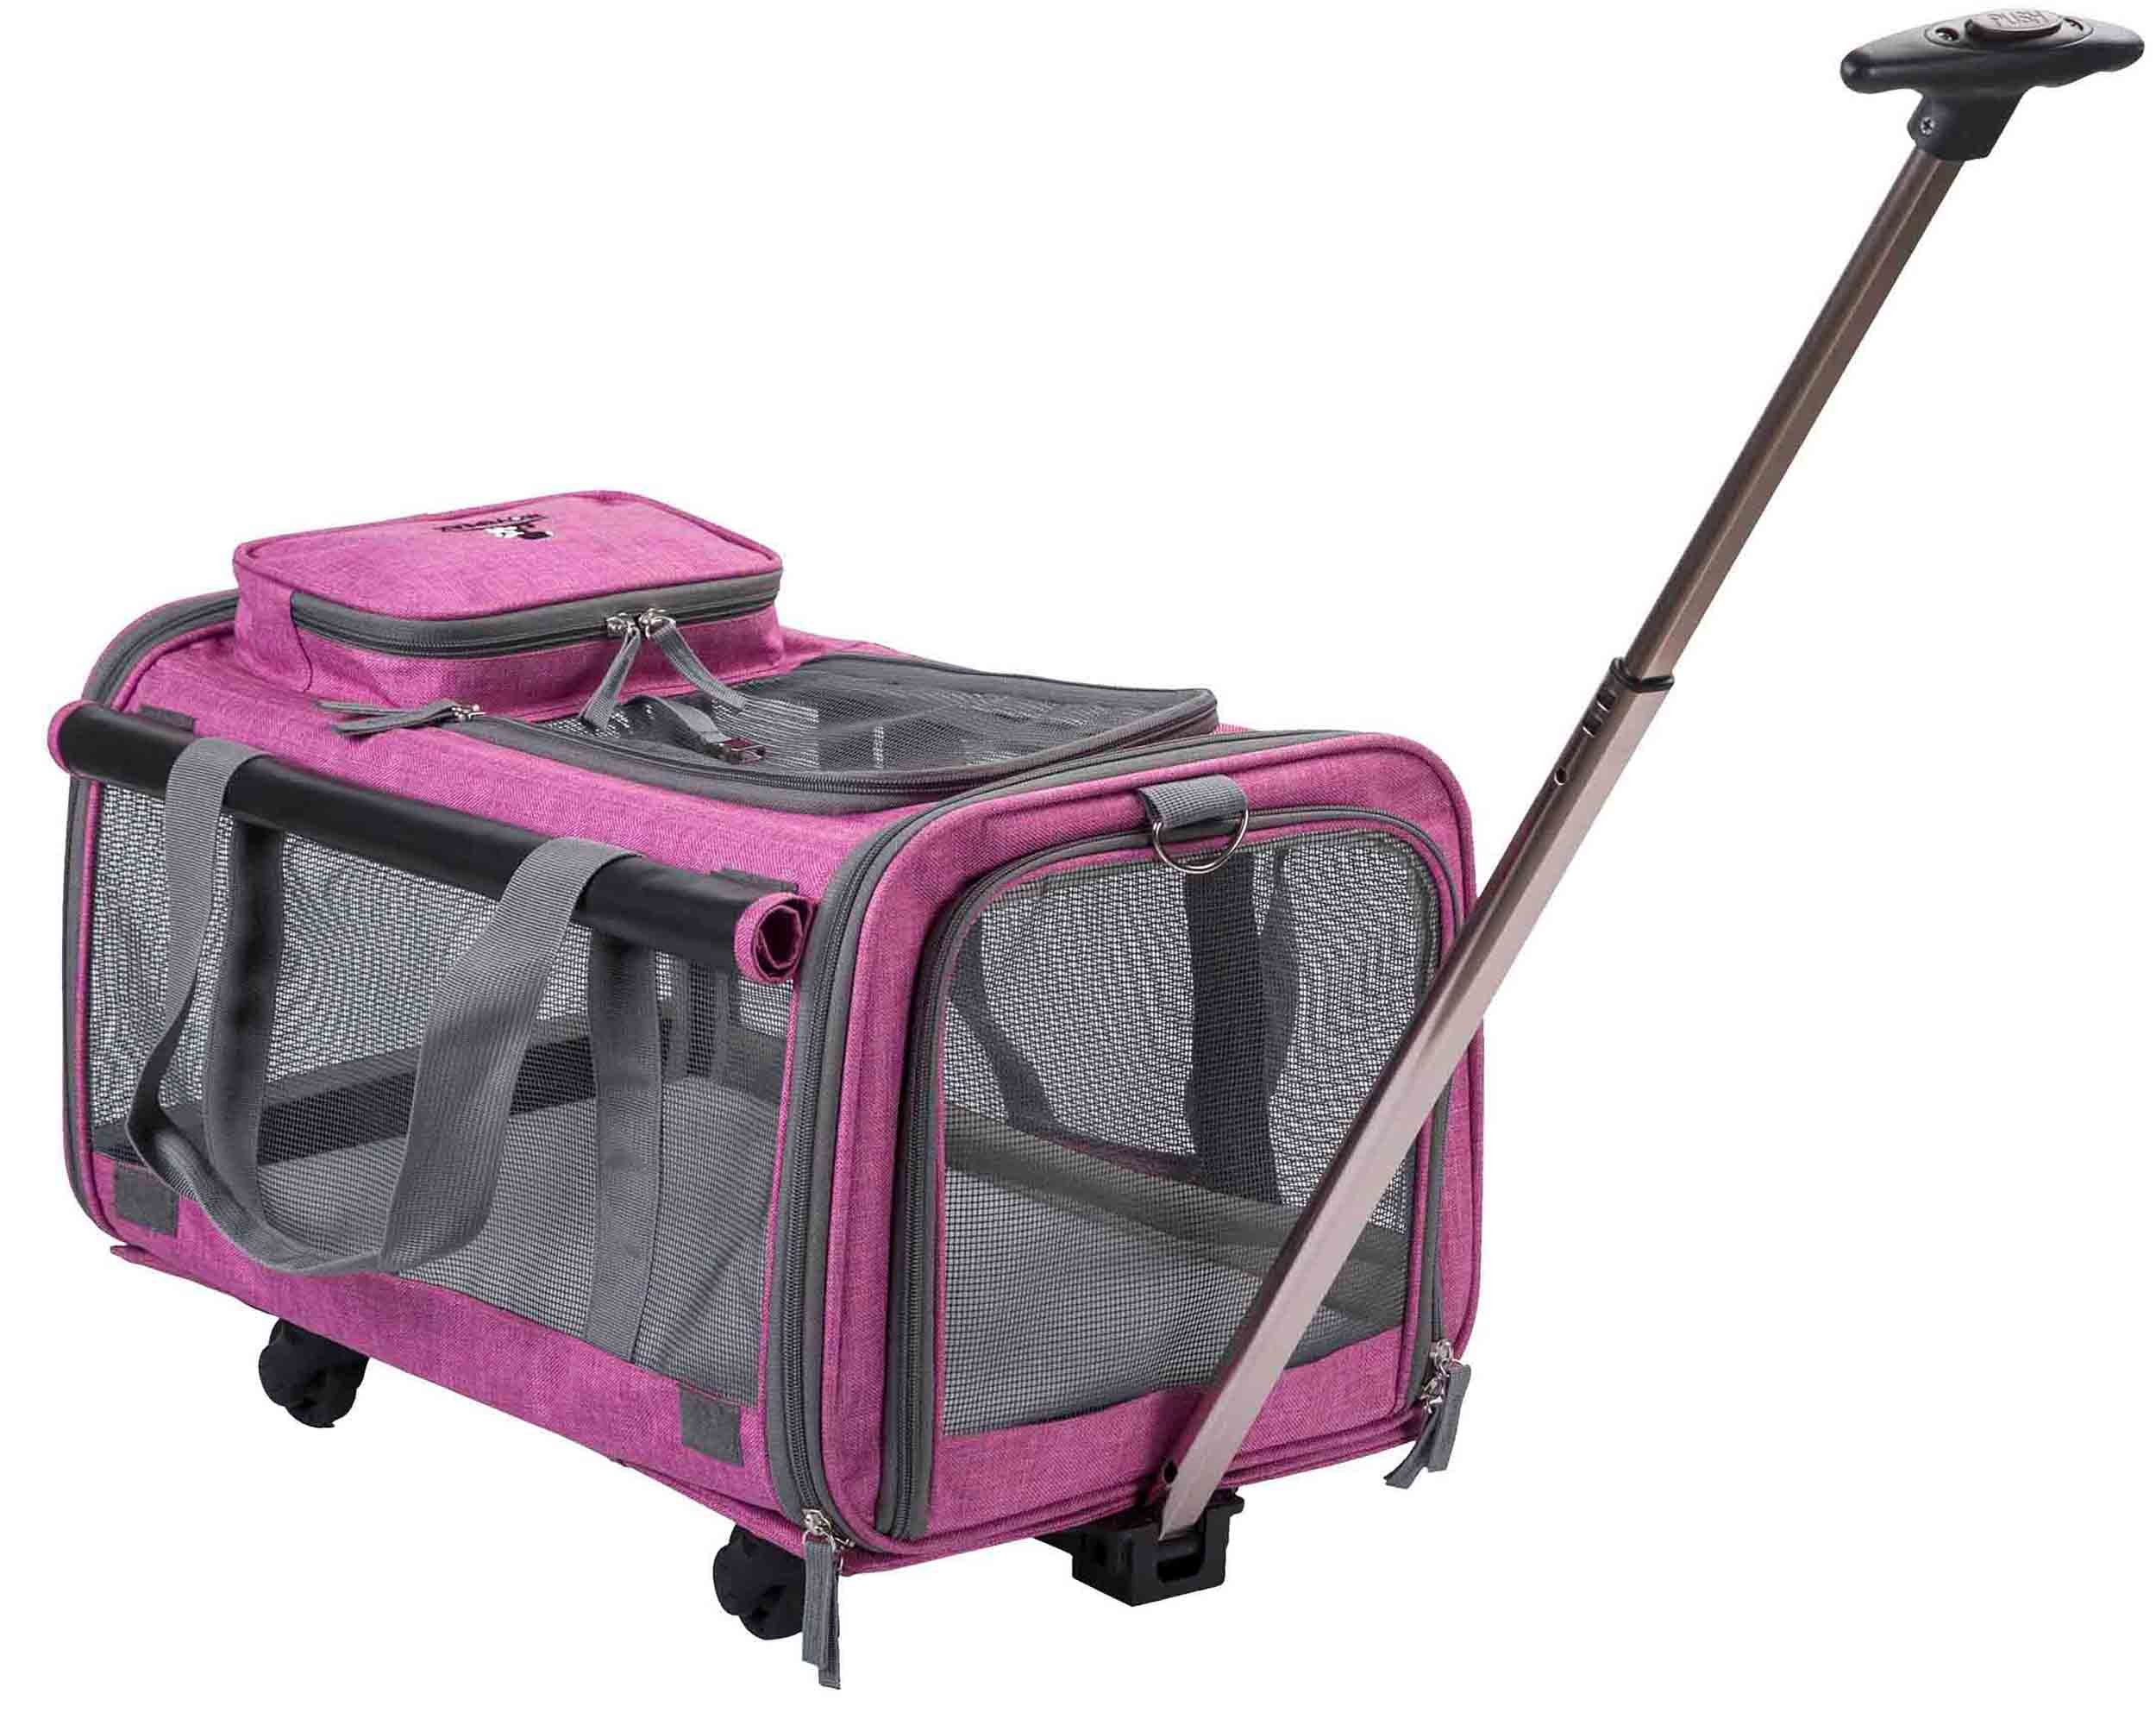 MOVEPEAK Folding Pets Carrier With Wheel, Luxury Pet Bag Strollers With Comfortable Fleece Mat For Travel, Hiking,Camping, Designed for Cats, Dogs, Kittens, Puppies, 360° Swivel Mute Wheels (Rose Red)